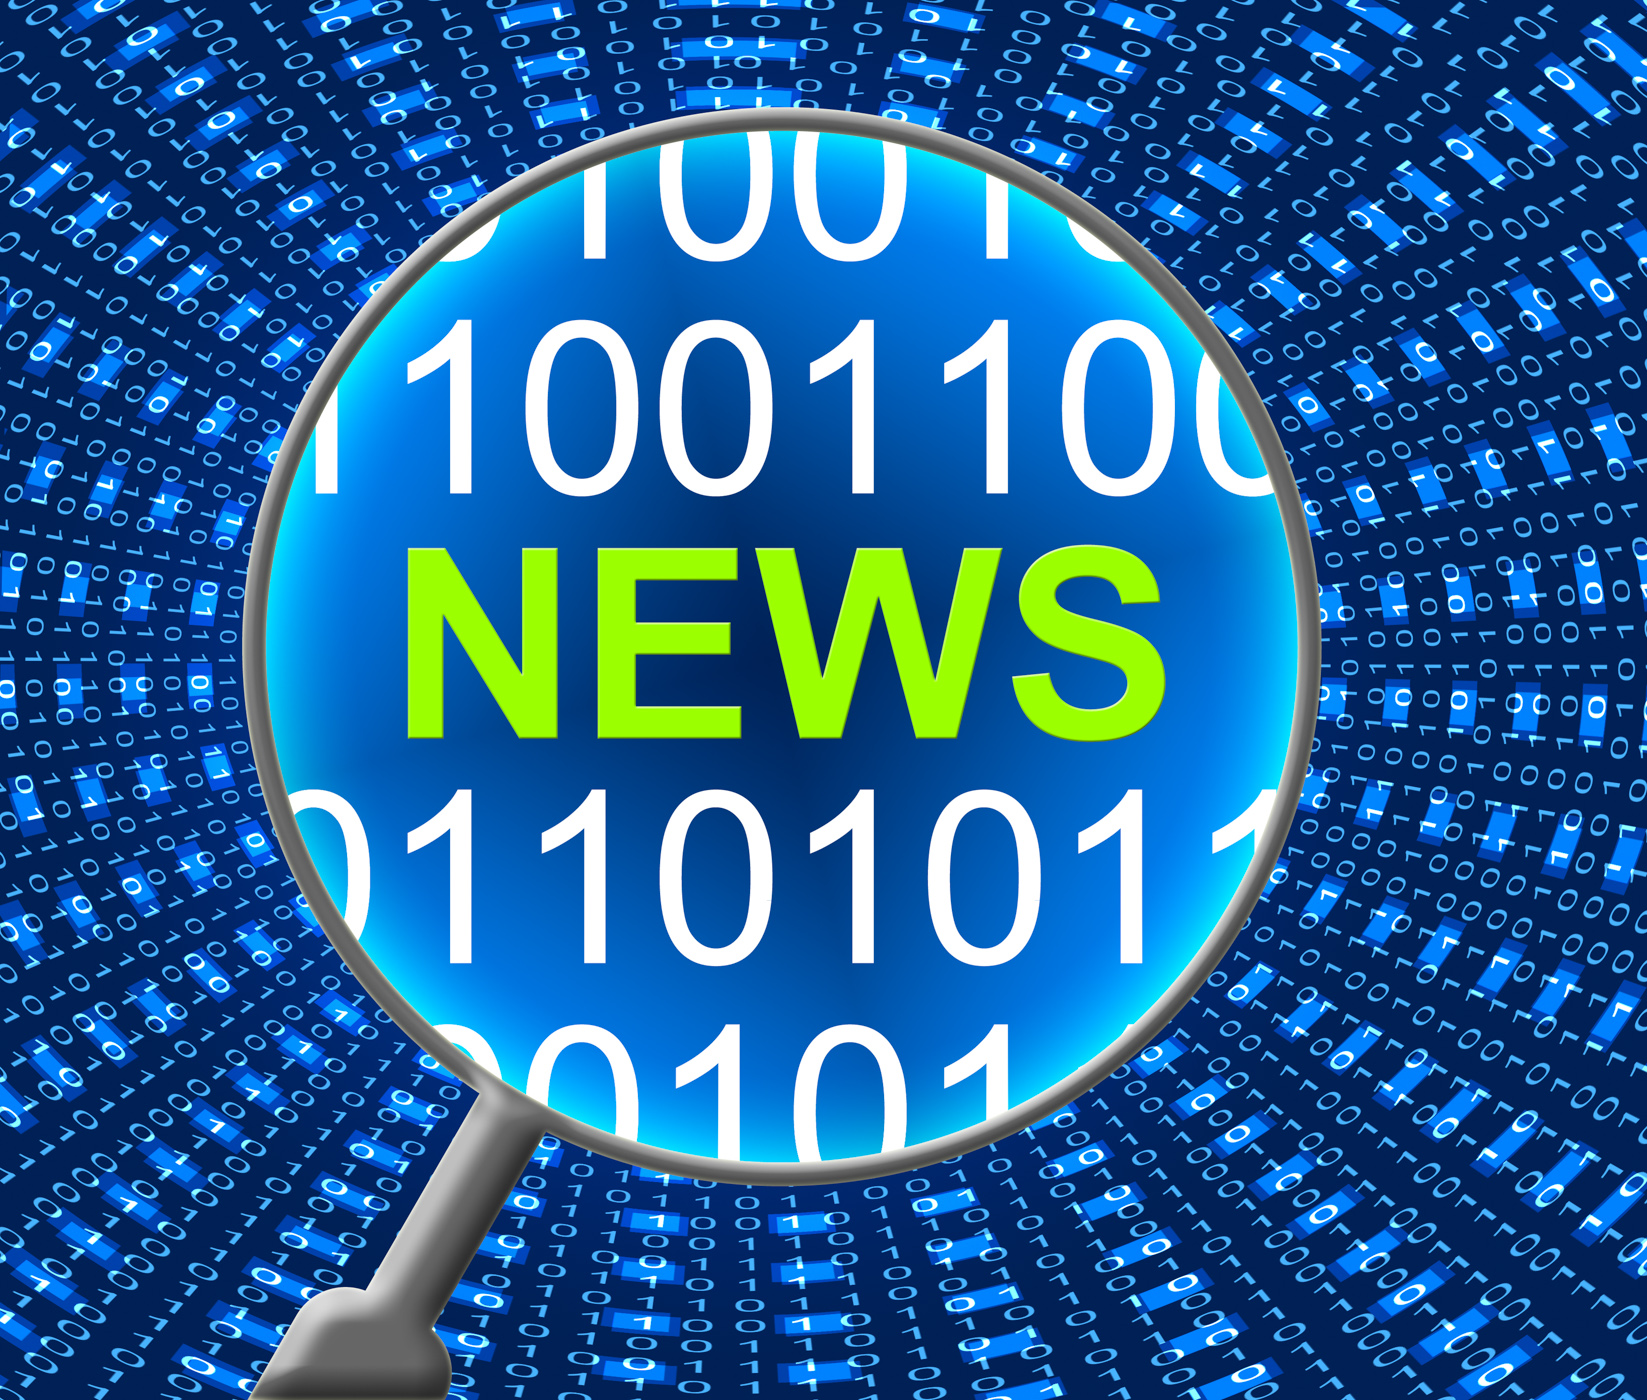 News online represents web site and computer photo